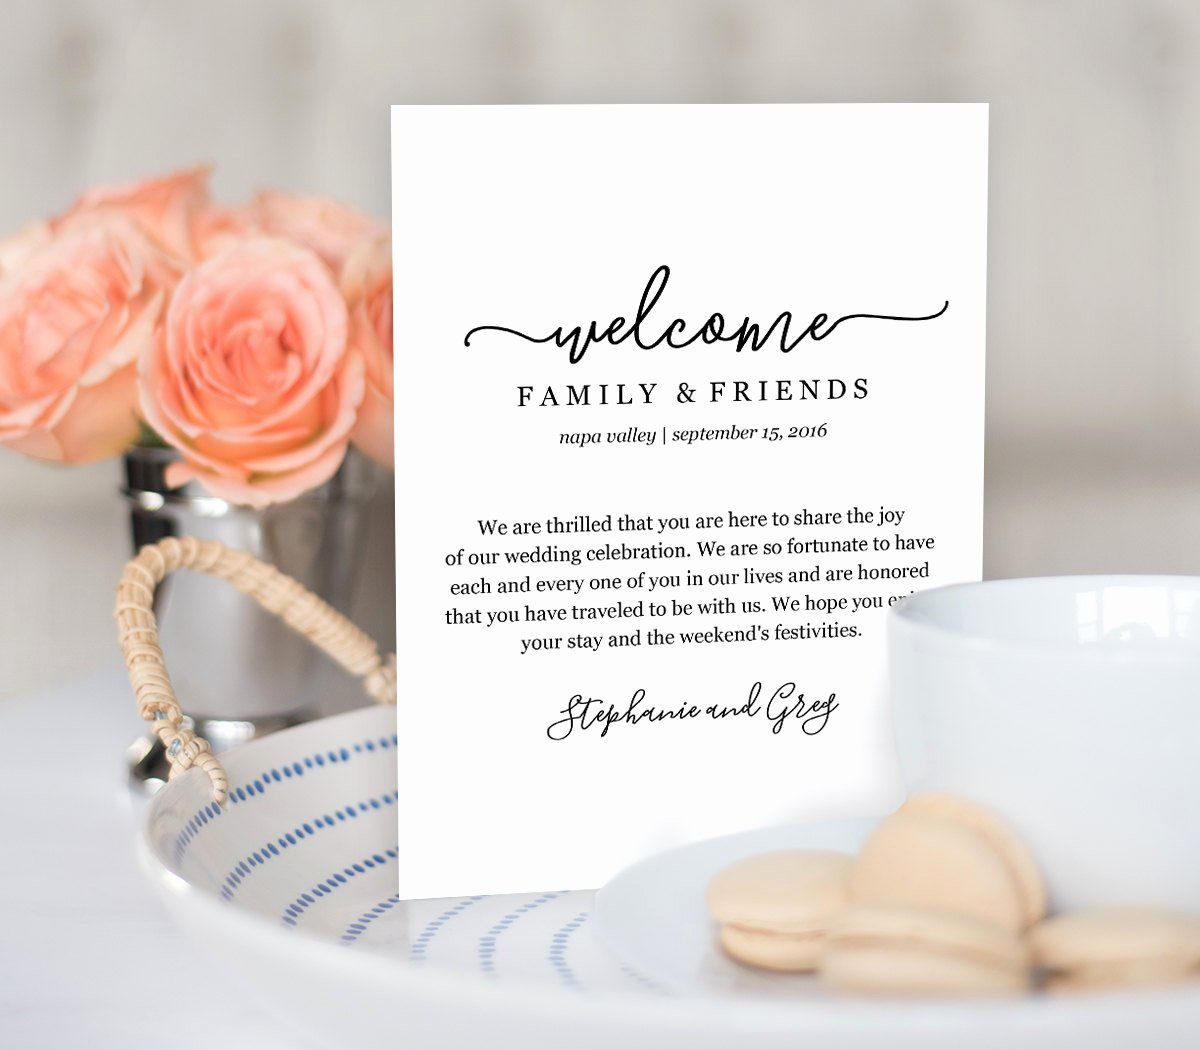 Wedding Hotel Welcome Letter Template Unique Wedding Wel E Bag Note Wel E Bag Letter Printable